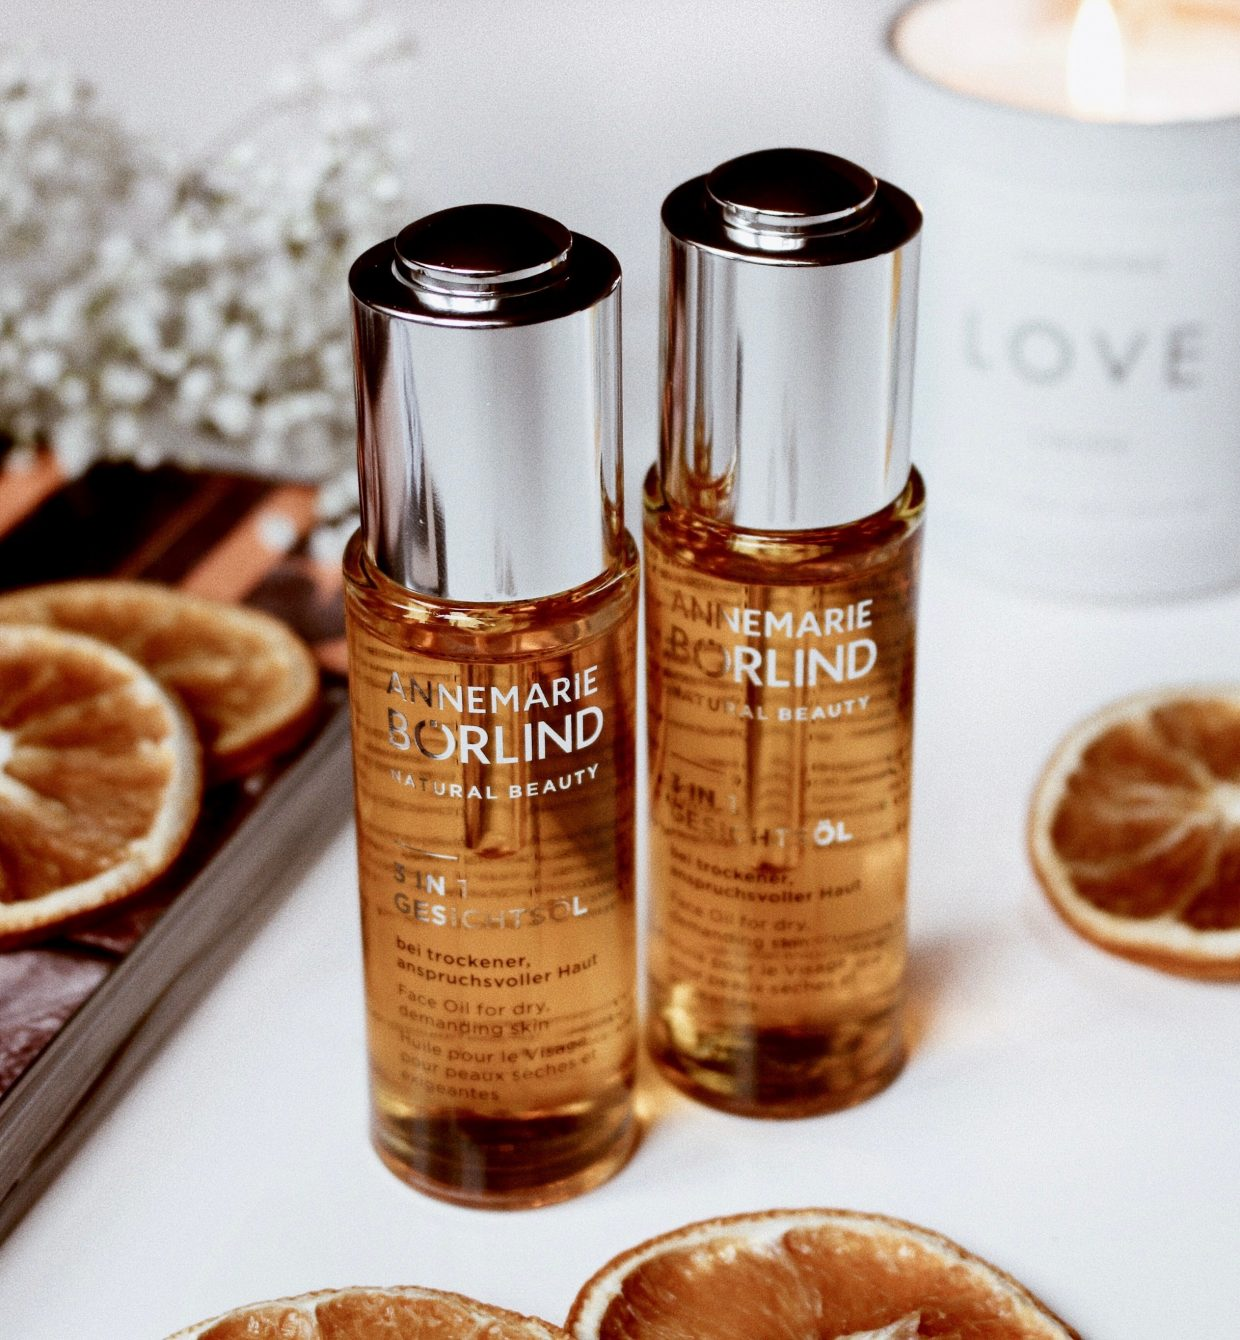 Beauty talk: The innovative, advanced face oil.